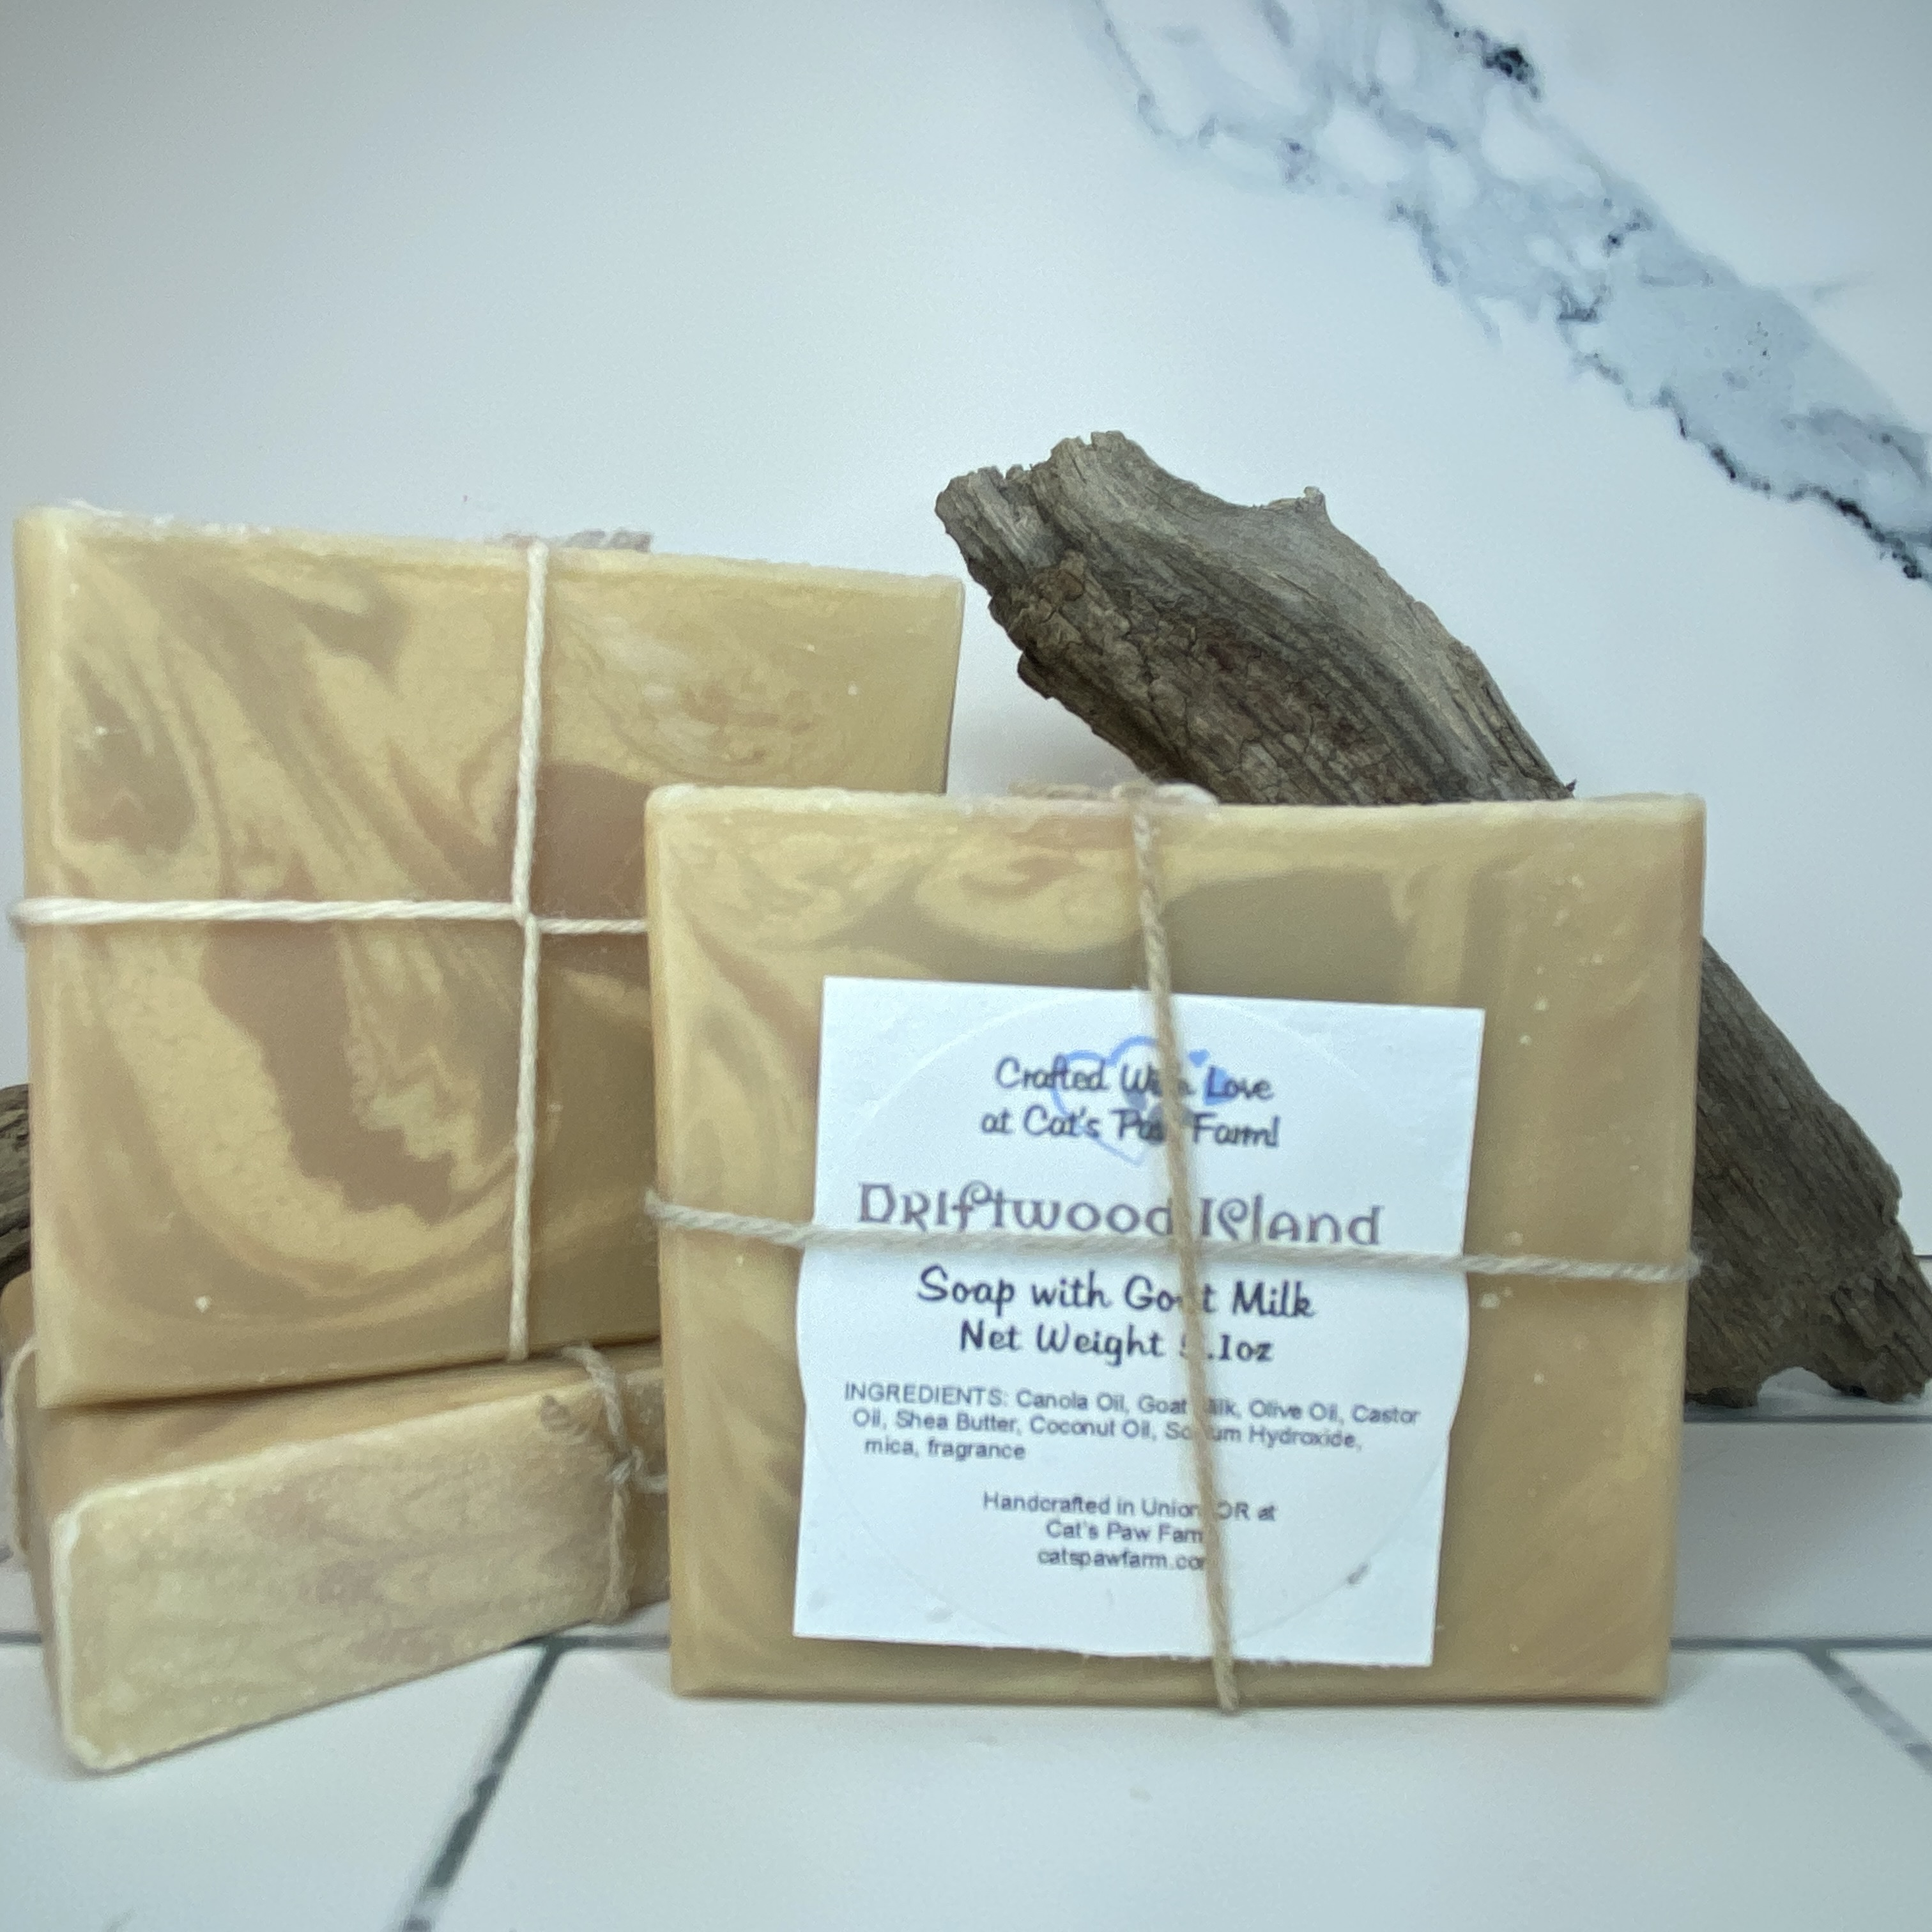 Driftwood Island Scented Soap with Goat Milk